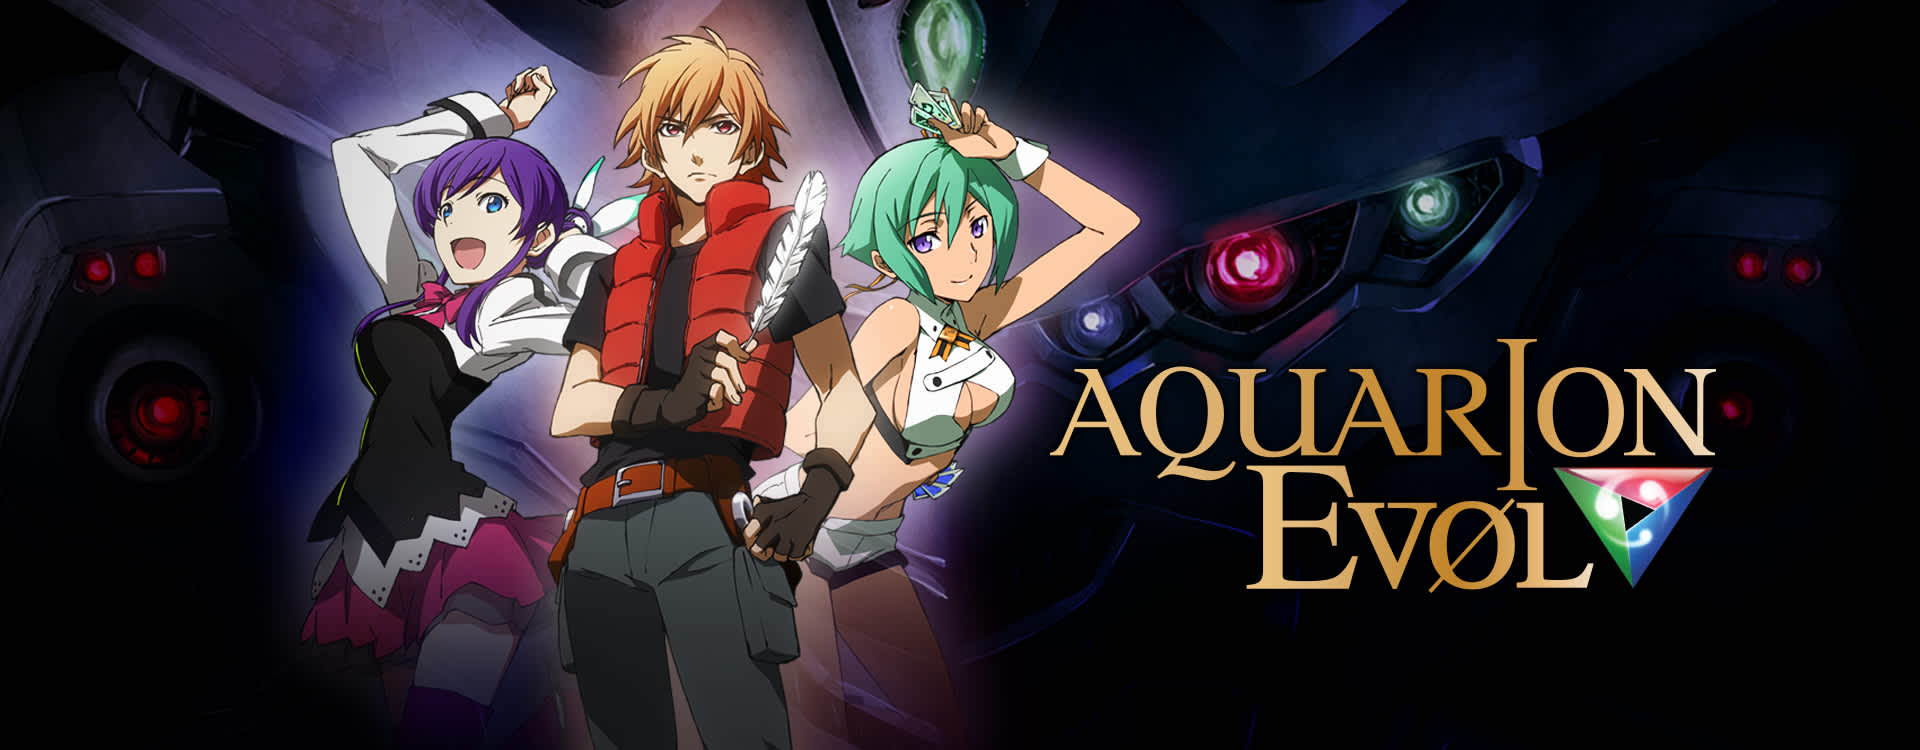 aquarion evol anime planet